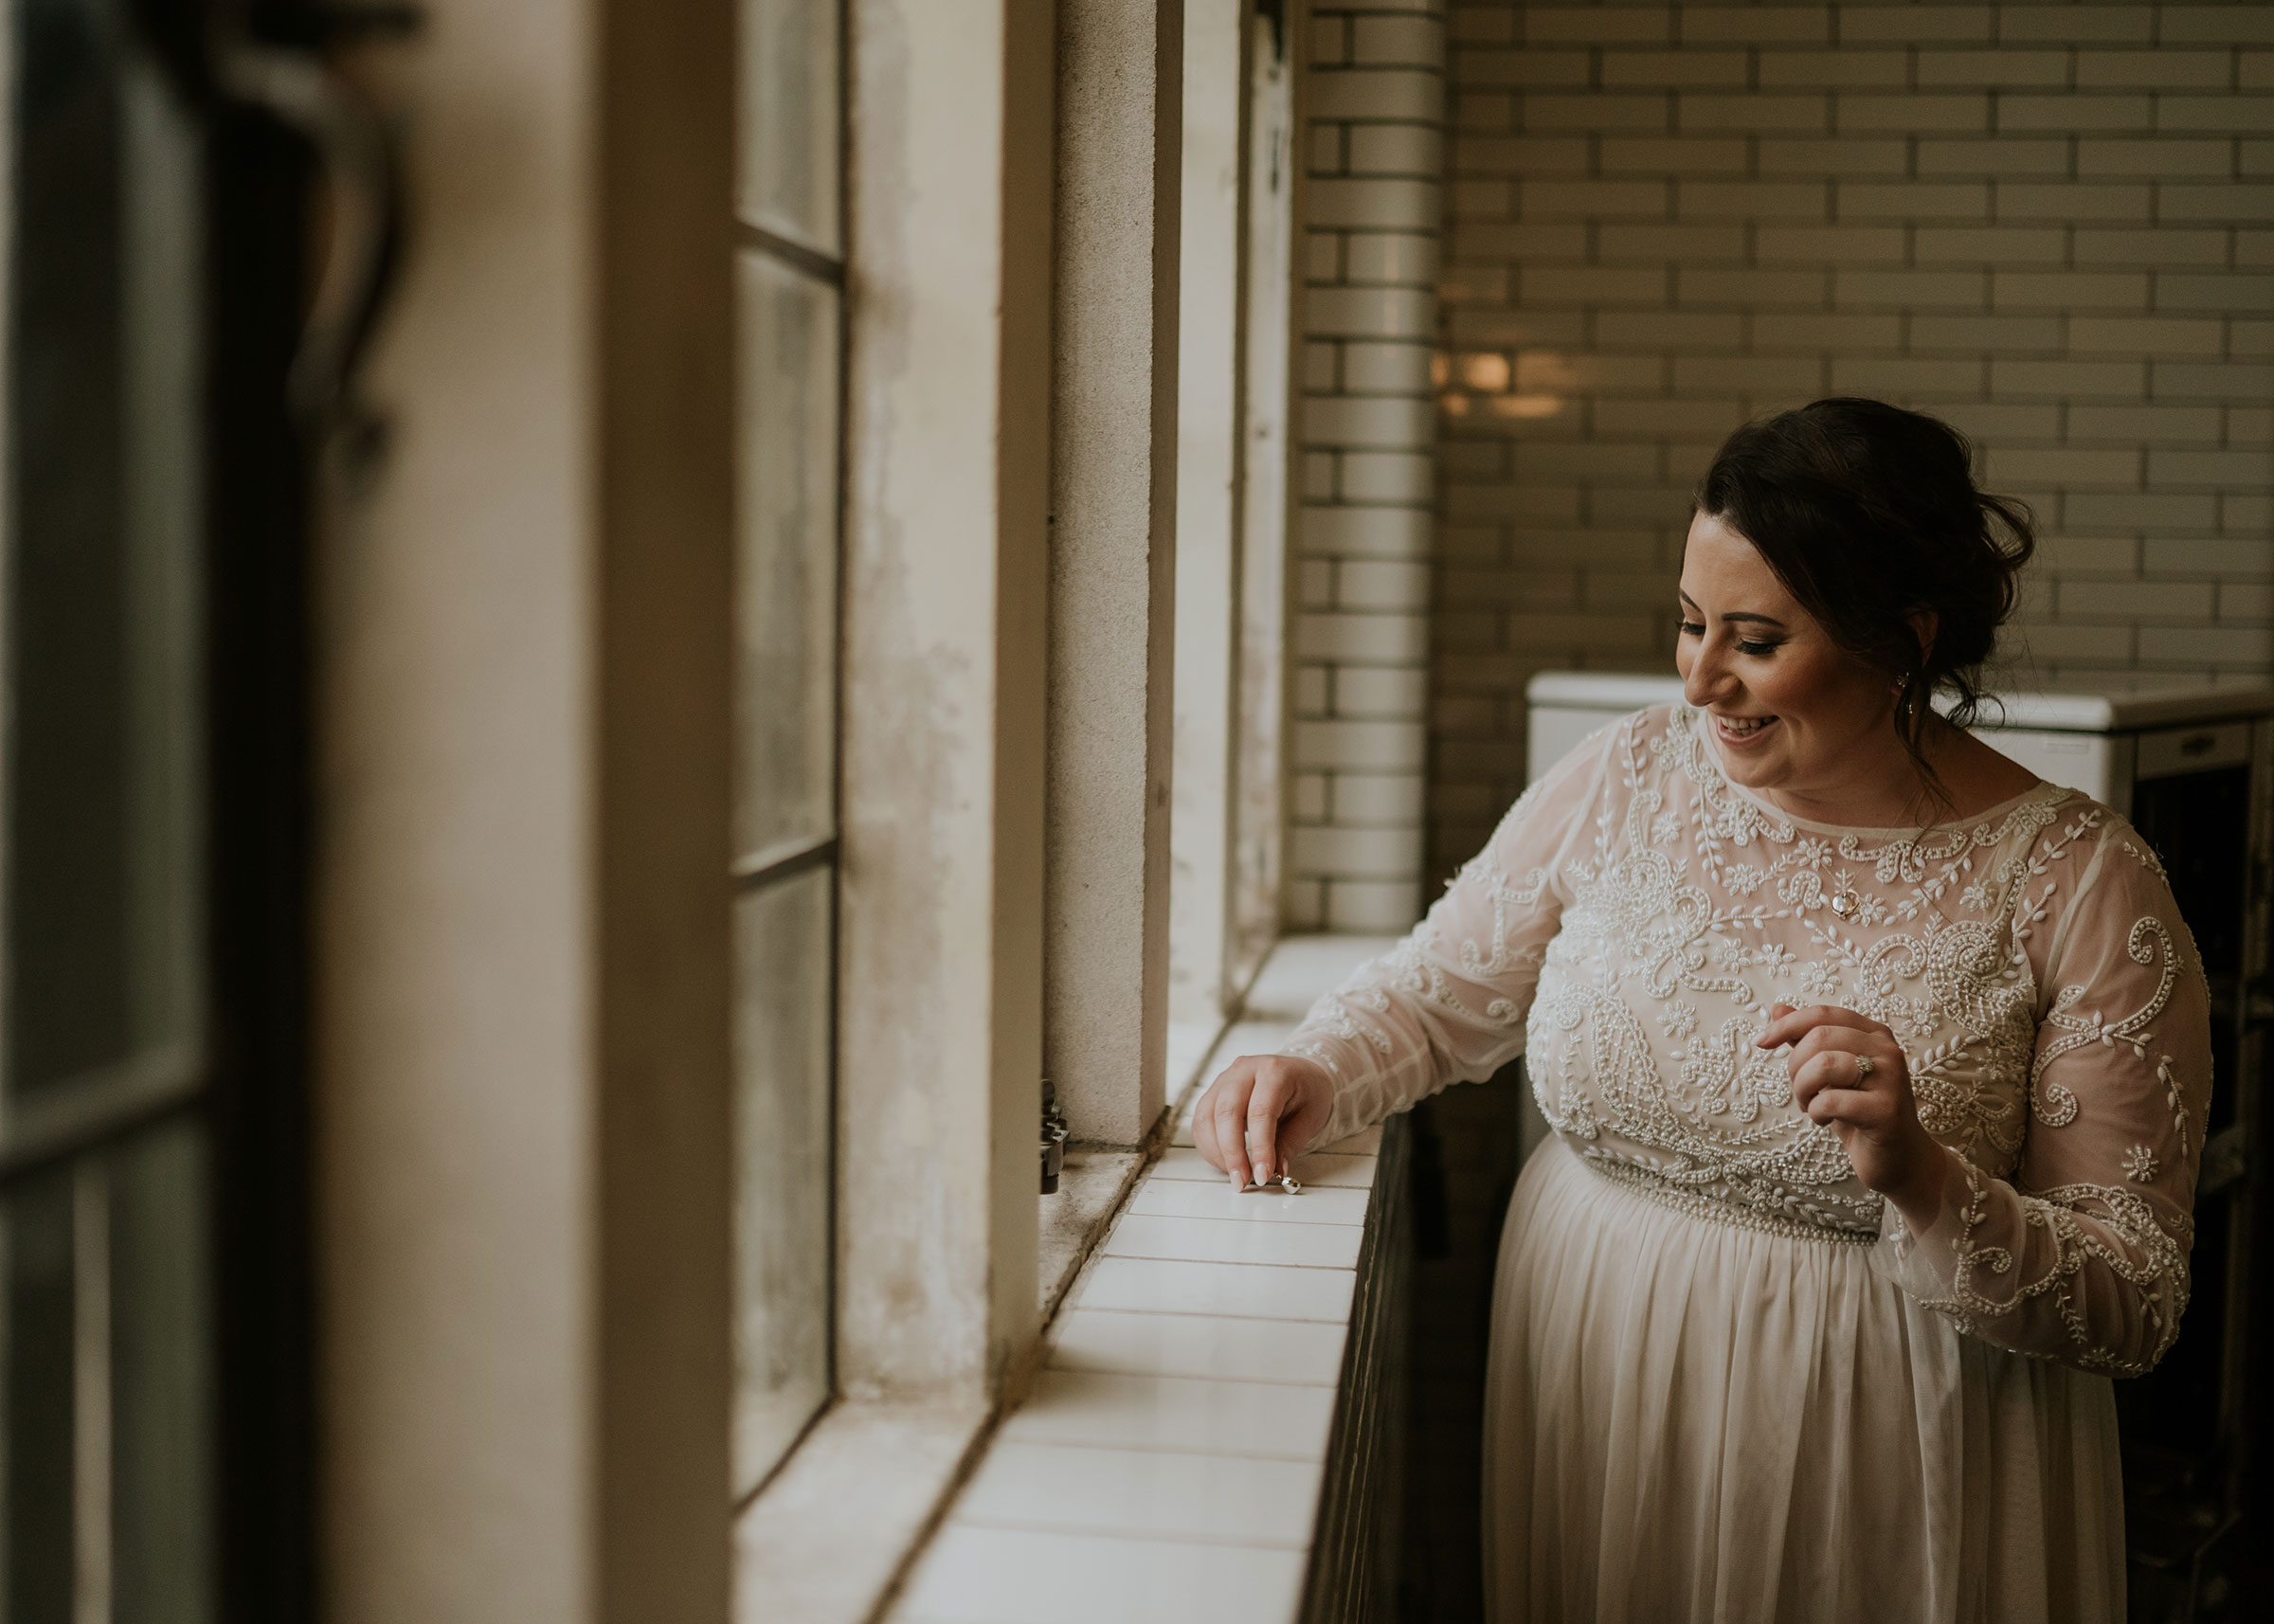 bride-laughing-putting-on-earrings-elopement-salisbury-house-desmoines-iowa-raelyn-ramey-photography.jpg